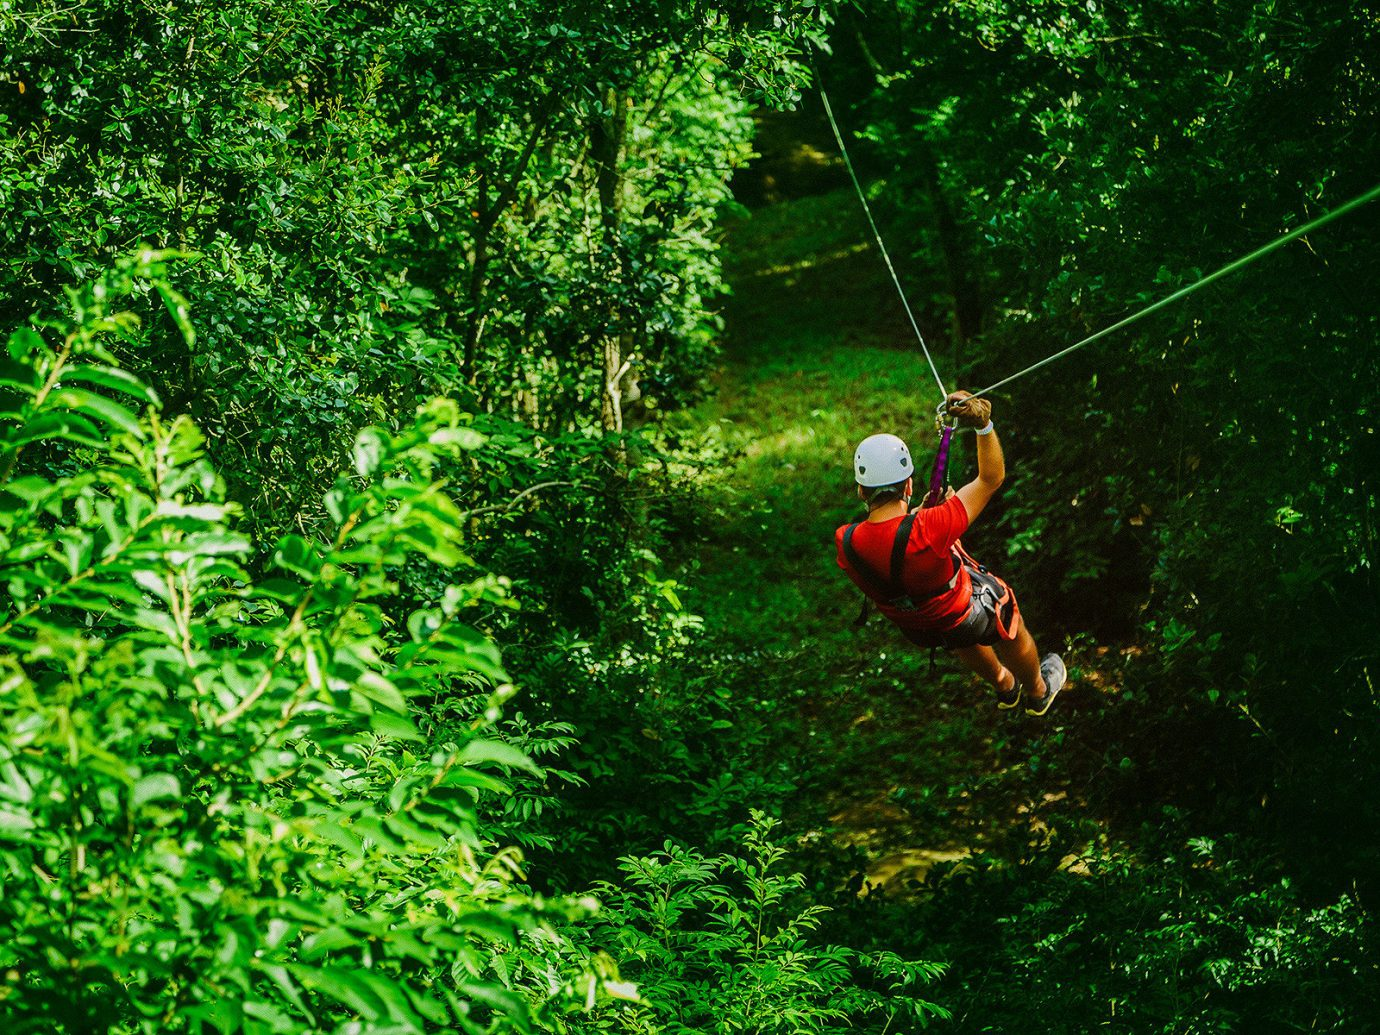 rain forest Trip Ideas zipline tree outdoor habitat green natural environment Forest rainforest Jungle Sport Adventure extreme sport screenshot woodland abseiling wooded